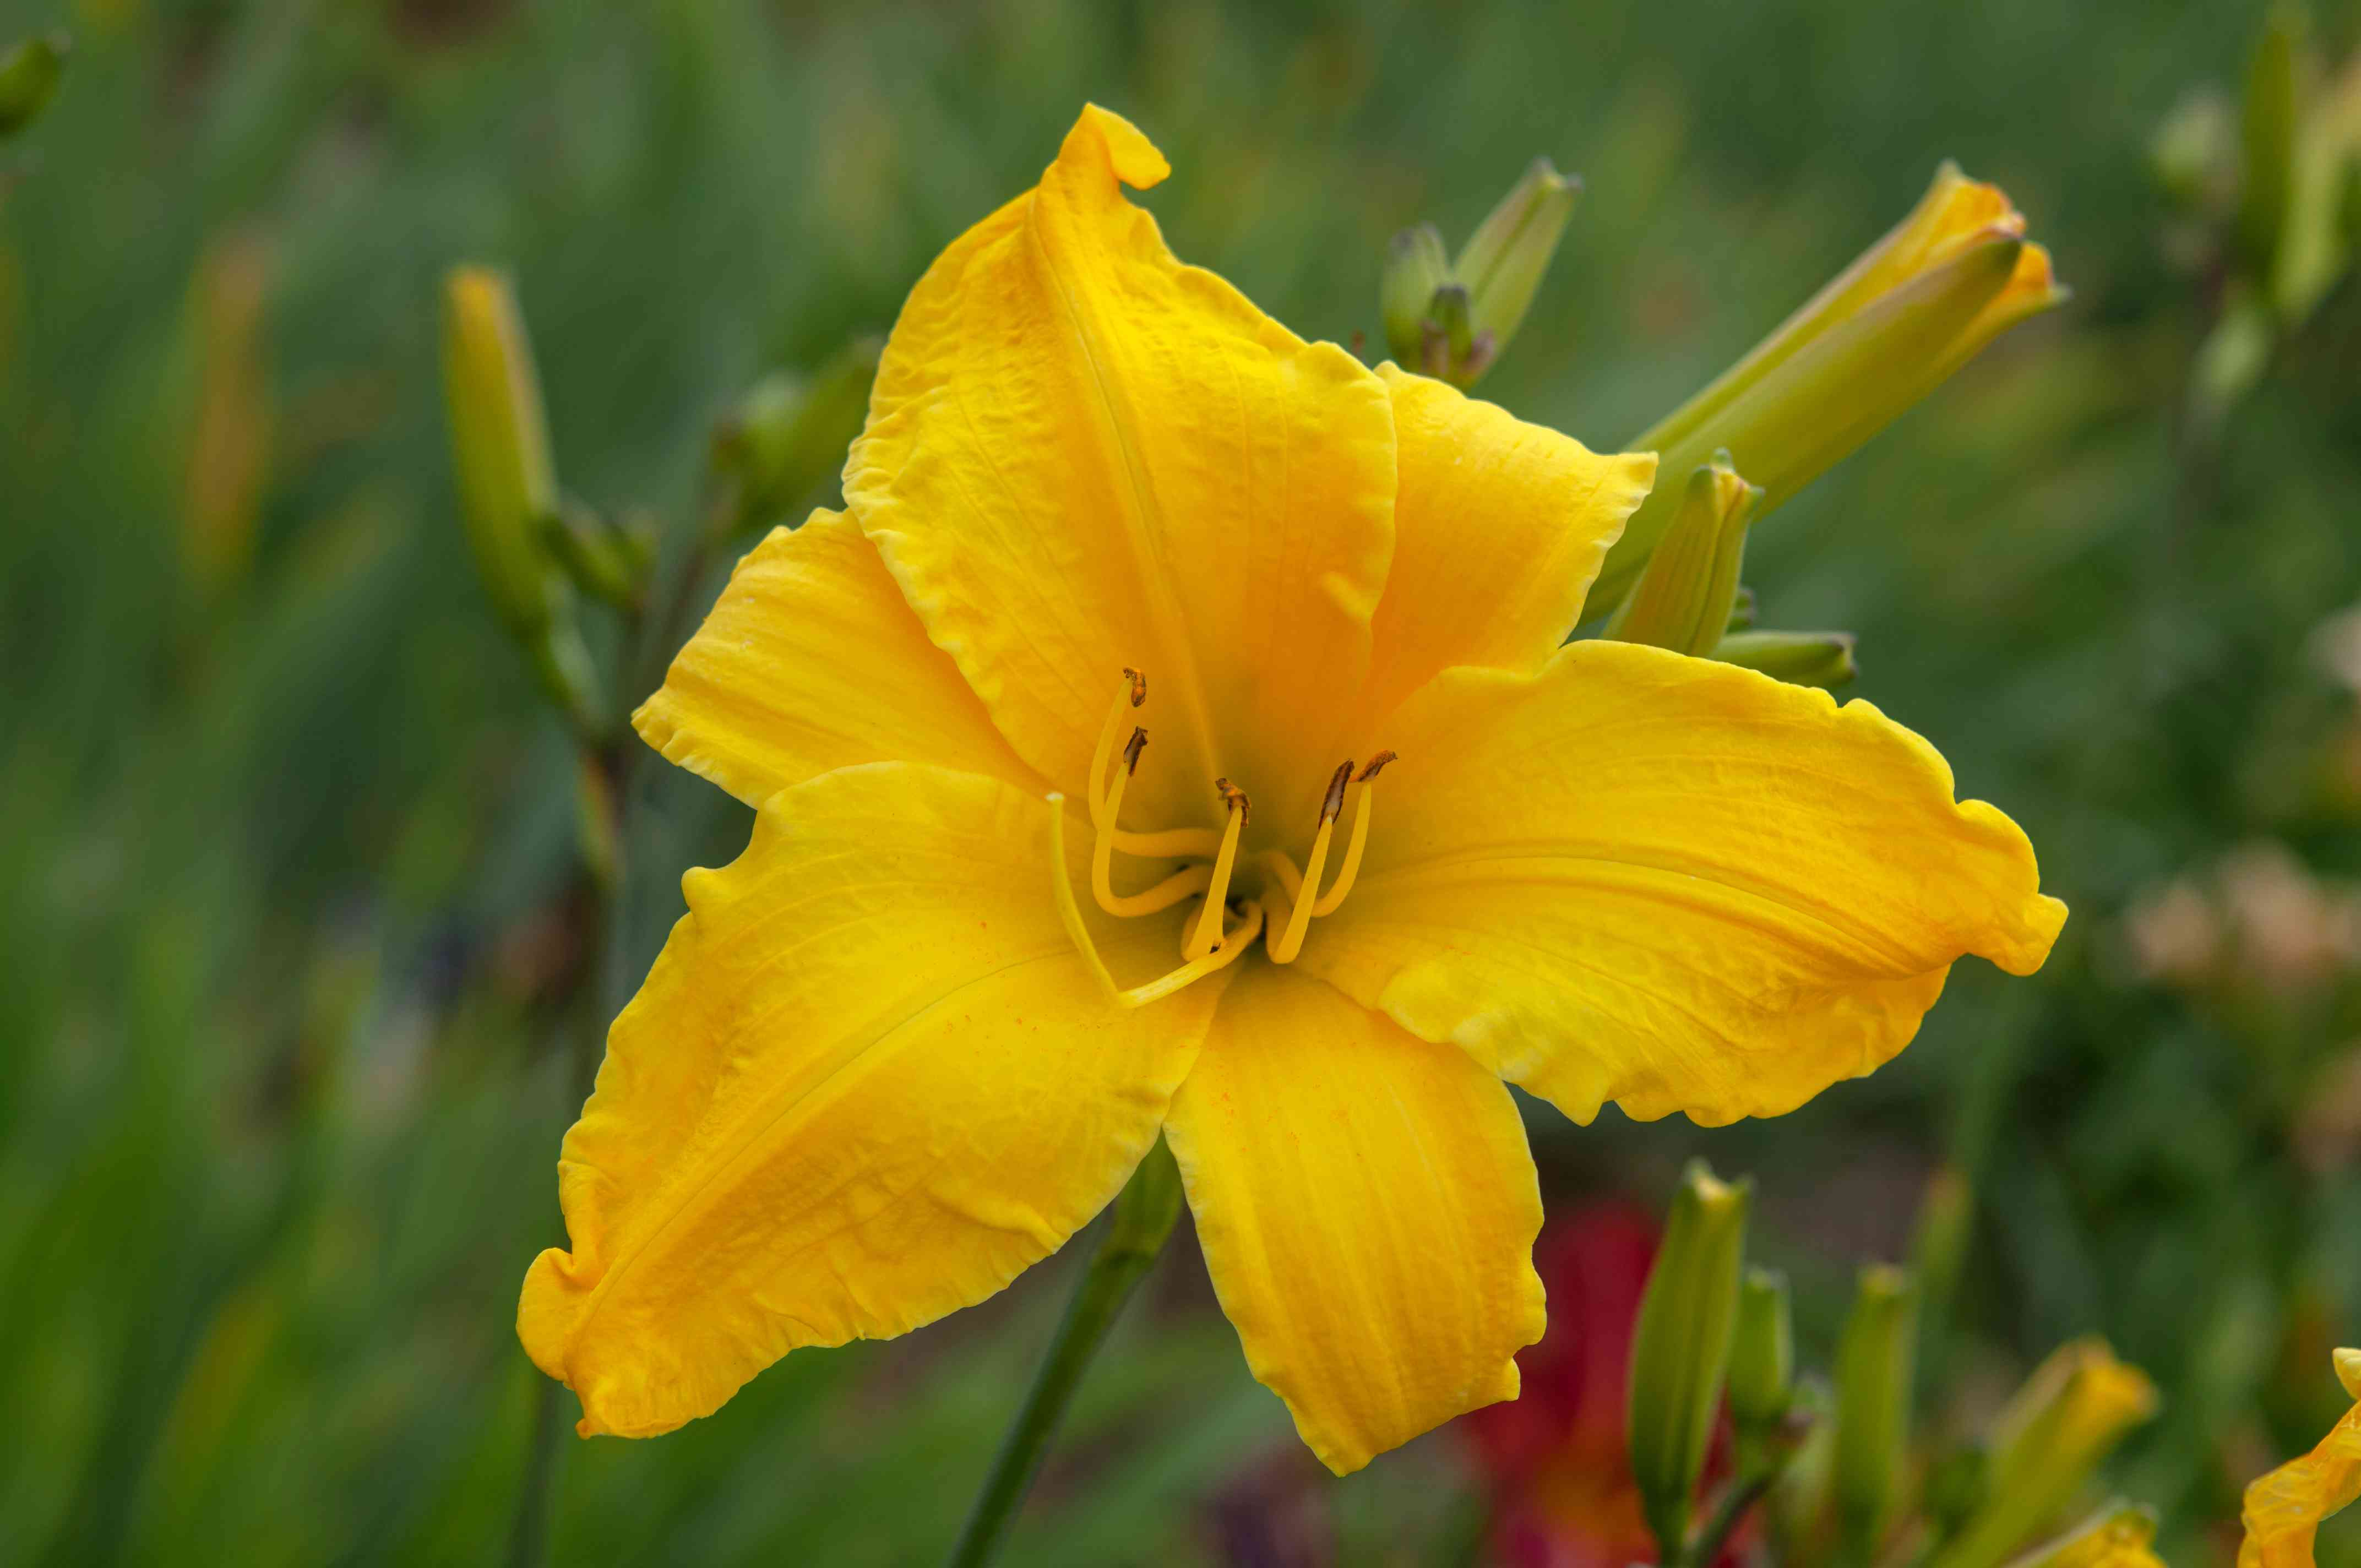 Flying saucer daylily with yellow petals and buds closeup